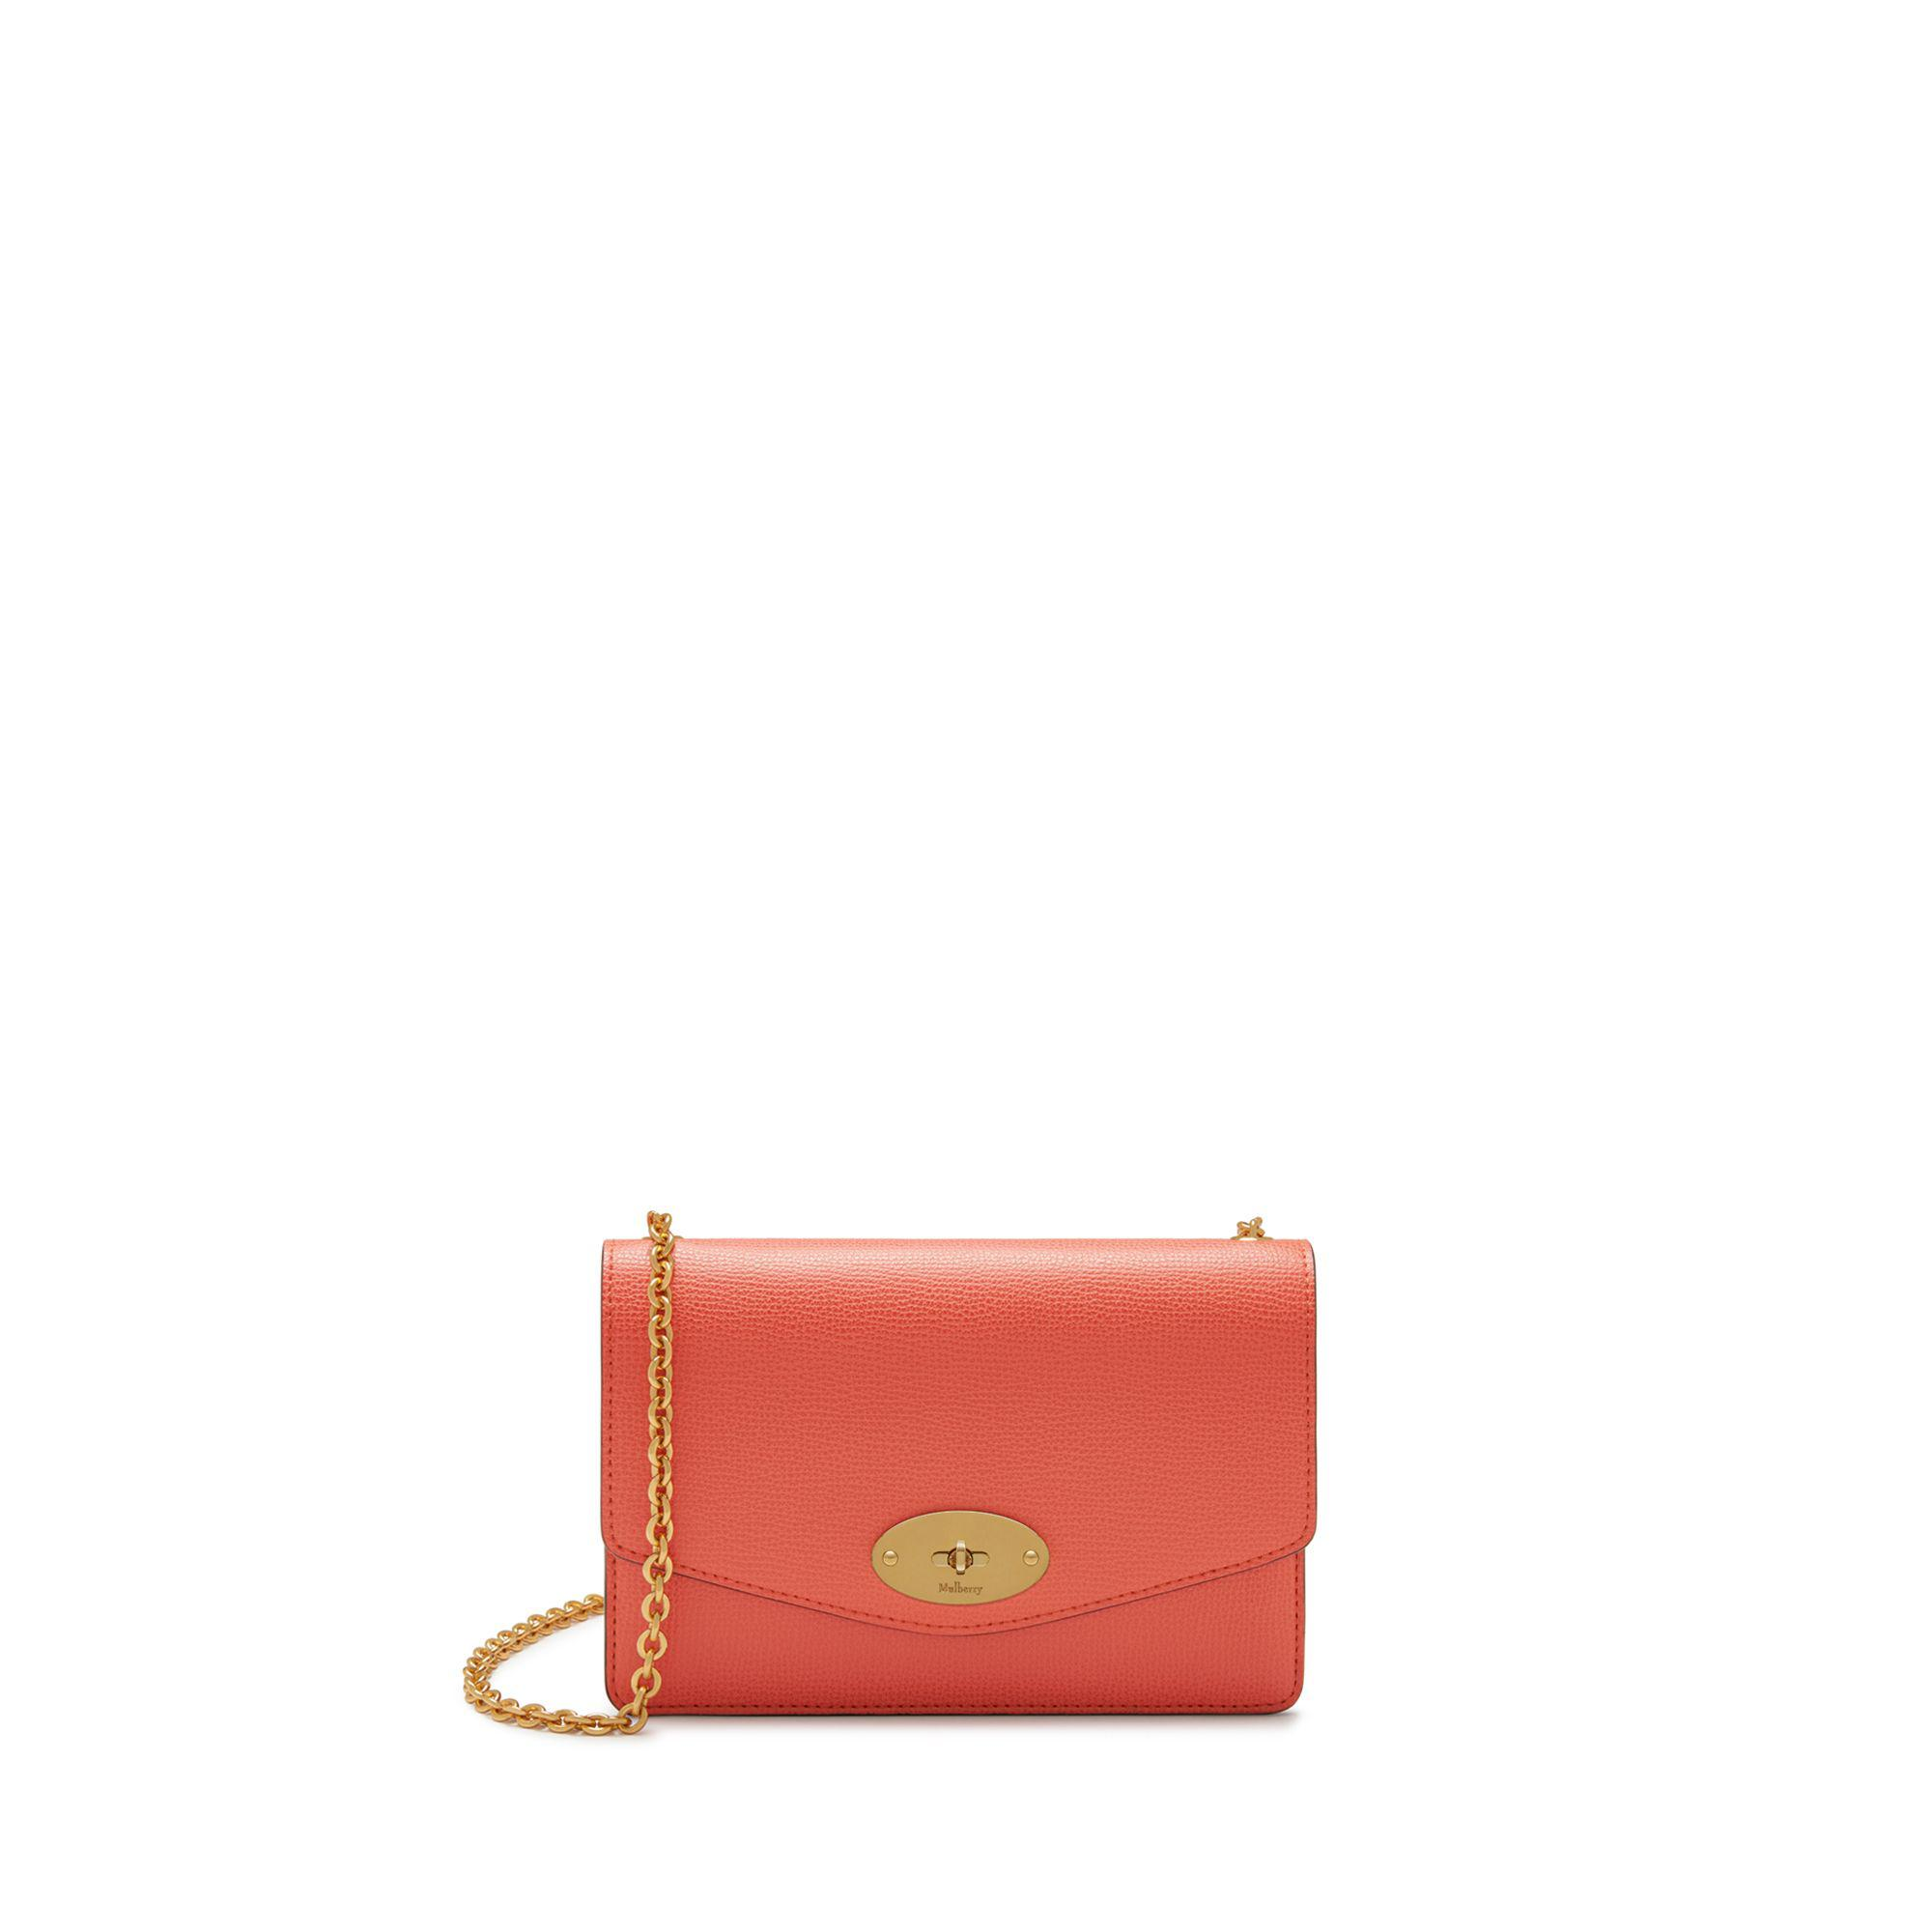 Lyst - Mulberry Small Darley In Coral Rose Cross Grain Leather in Pink 8b94171caec60